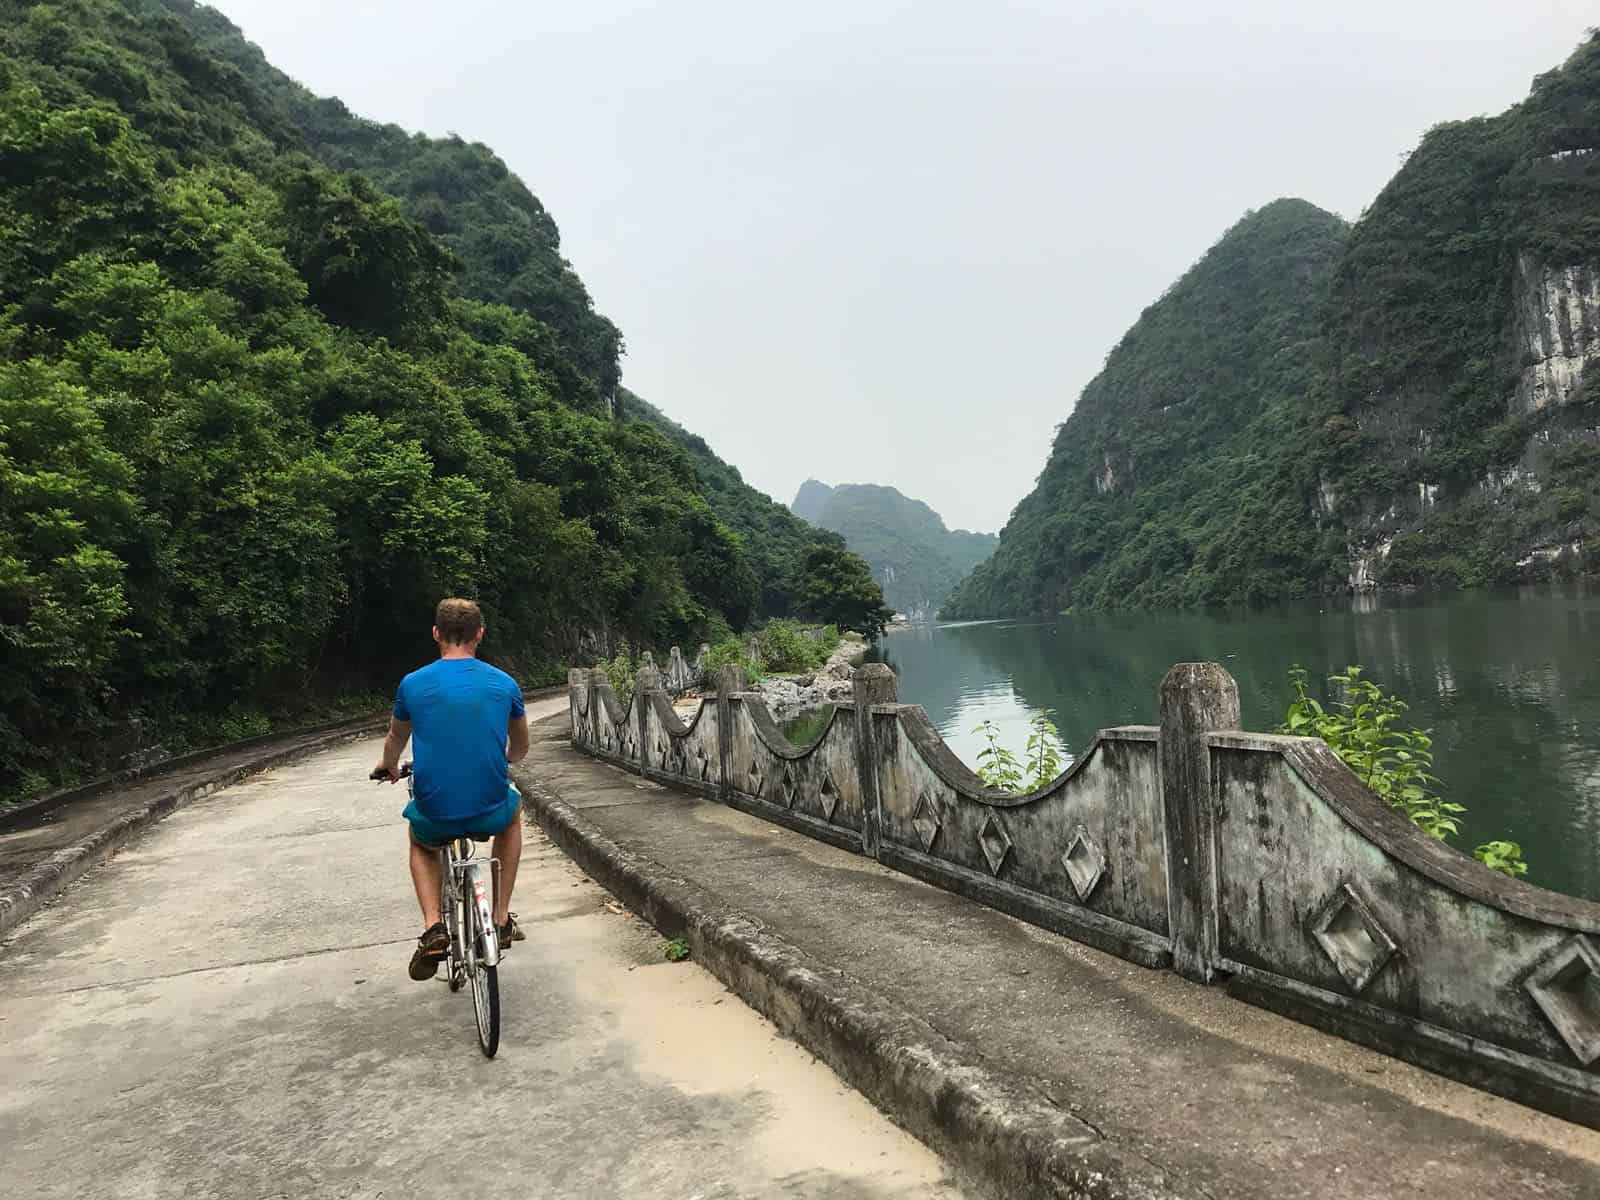 Biking along the water is just one of the activities one can do in Halong Bay, Vietnam